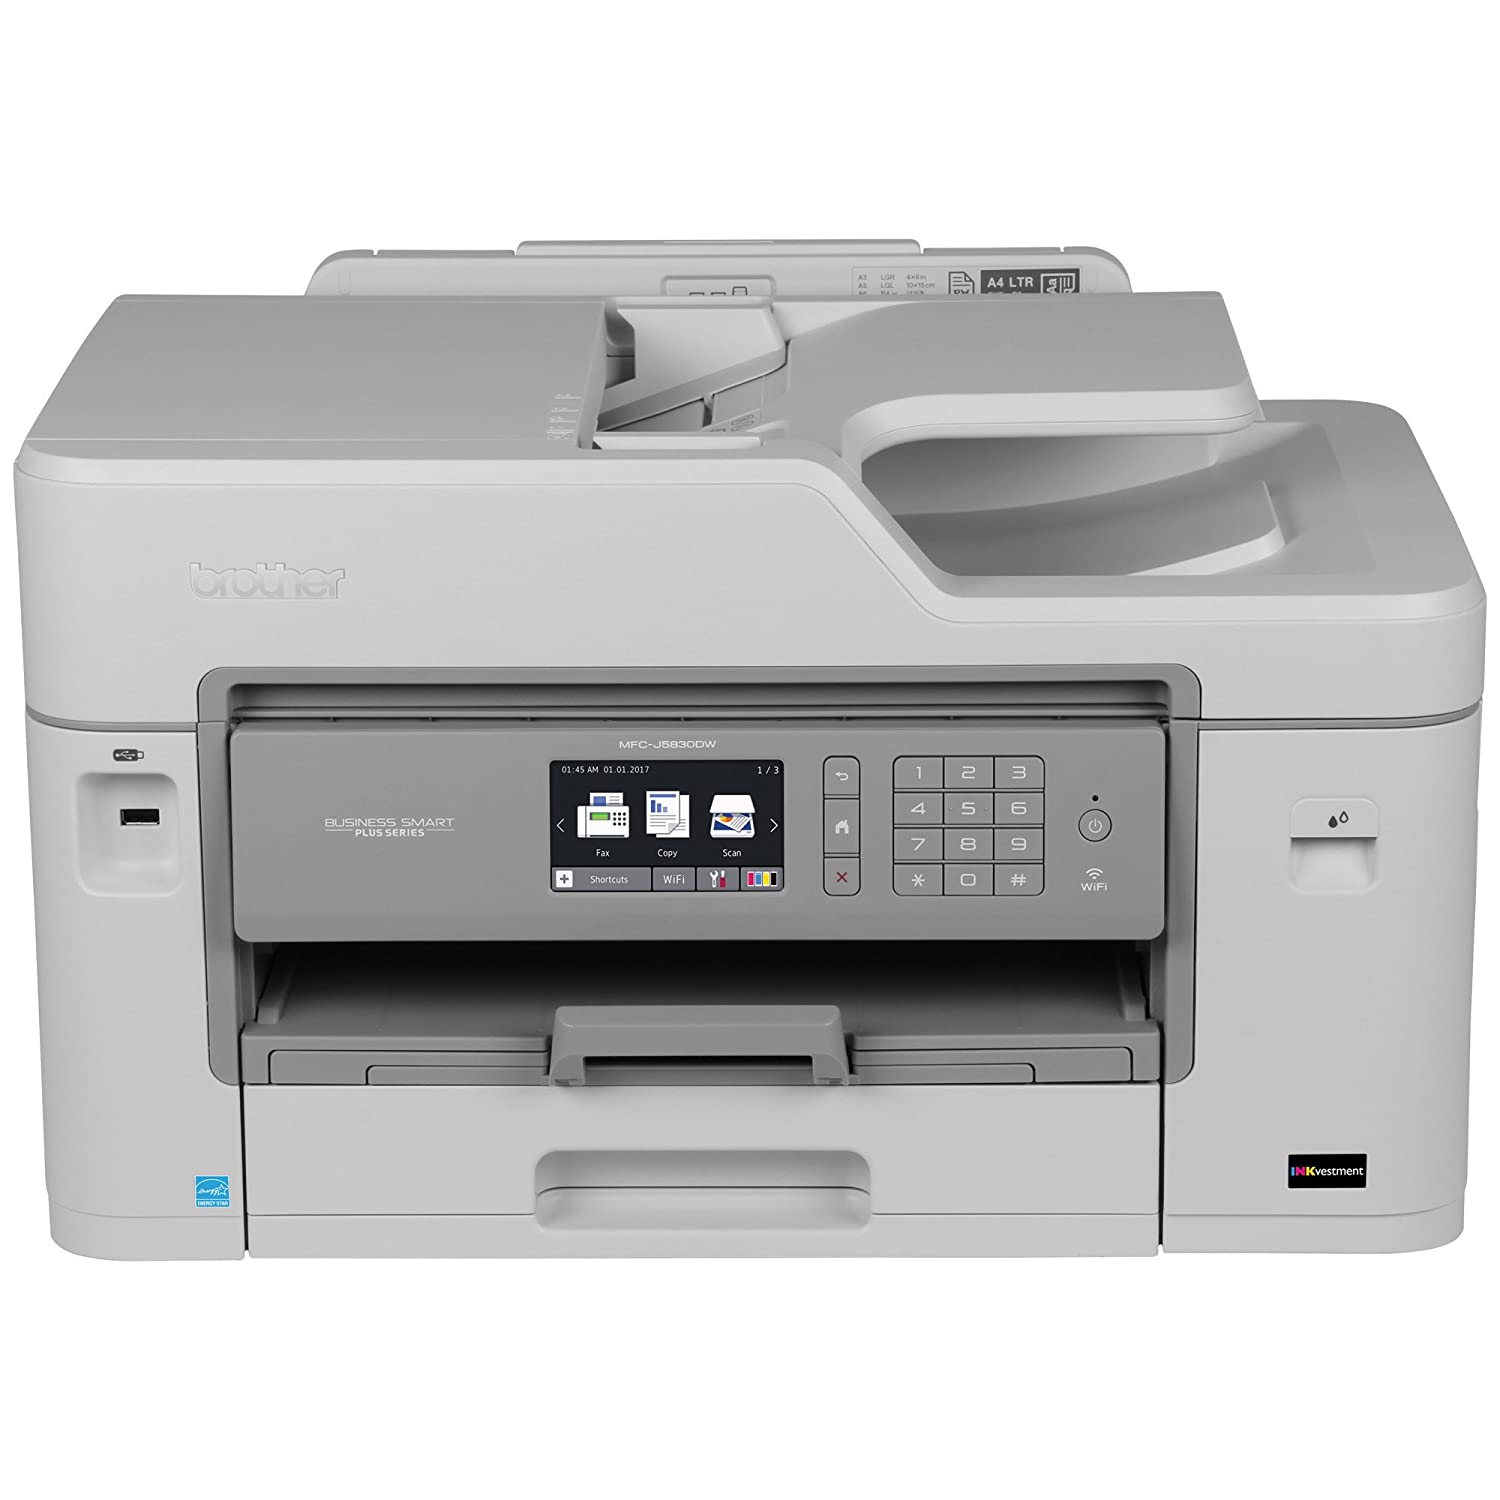 Brother MFC-9180 Scanner Resolution Improvement 64Bit